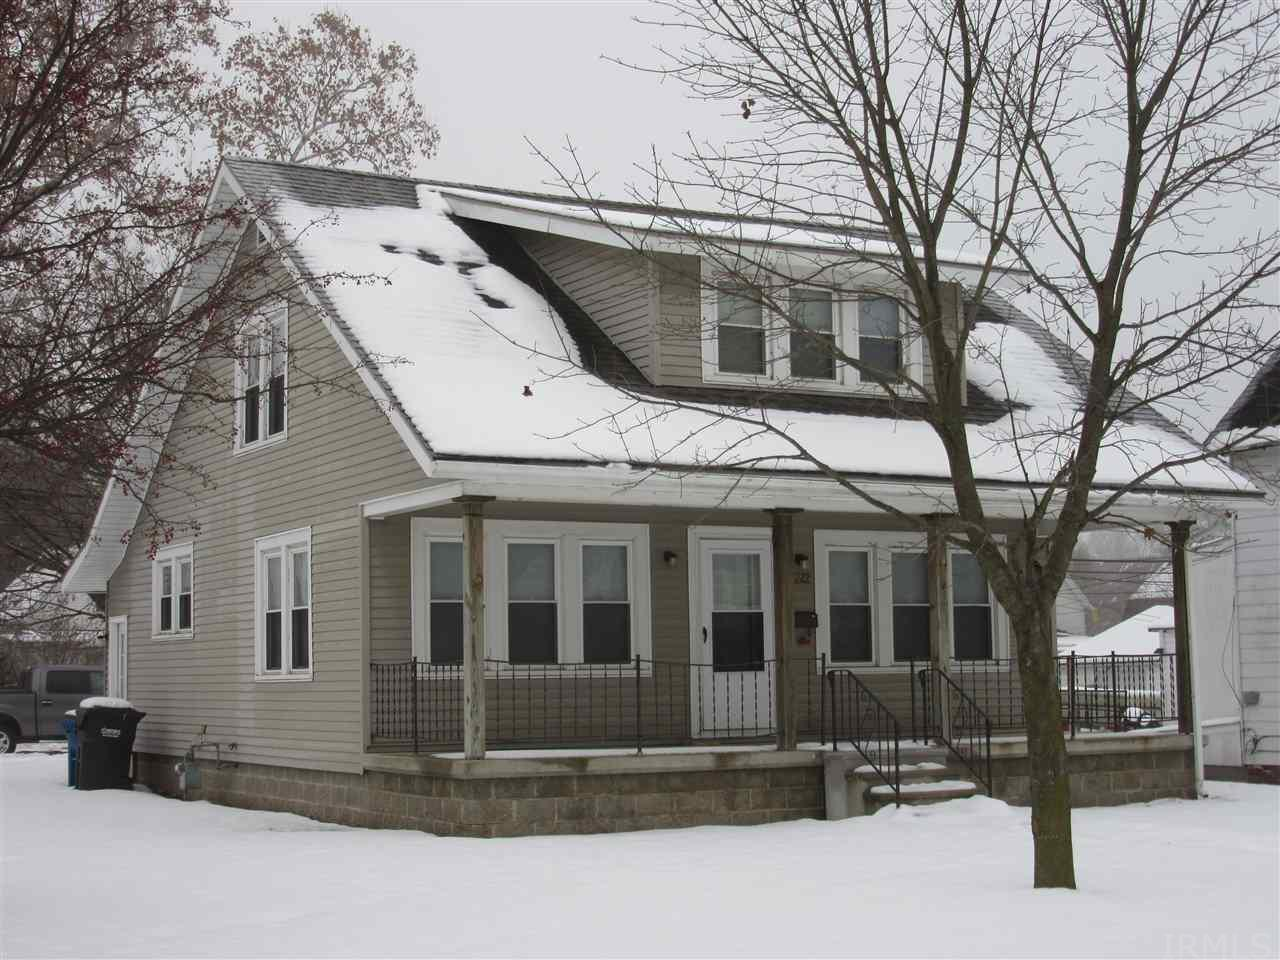 Come home to charm and lots of space! Lovely 4 bedroom 1 bath home in great condition over a spacious modern basement that is ready for your finishing touches. Original hardwood floors and lots of windows let in tons of natural light!  Enjoy the sunset at dinner with windows on two sides! Full width front porch allows the same enjoyment of simpler times. Large private driveway for off-street parking.. corner lot located ideally close to downtown conveniences. Come see it today won't last long!